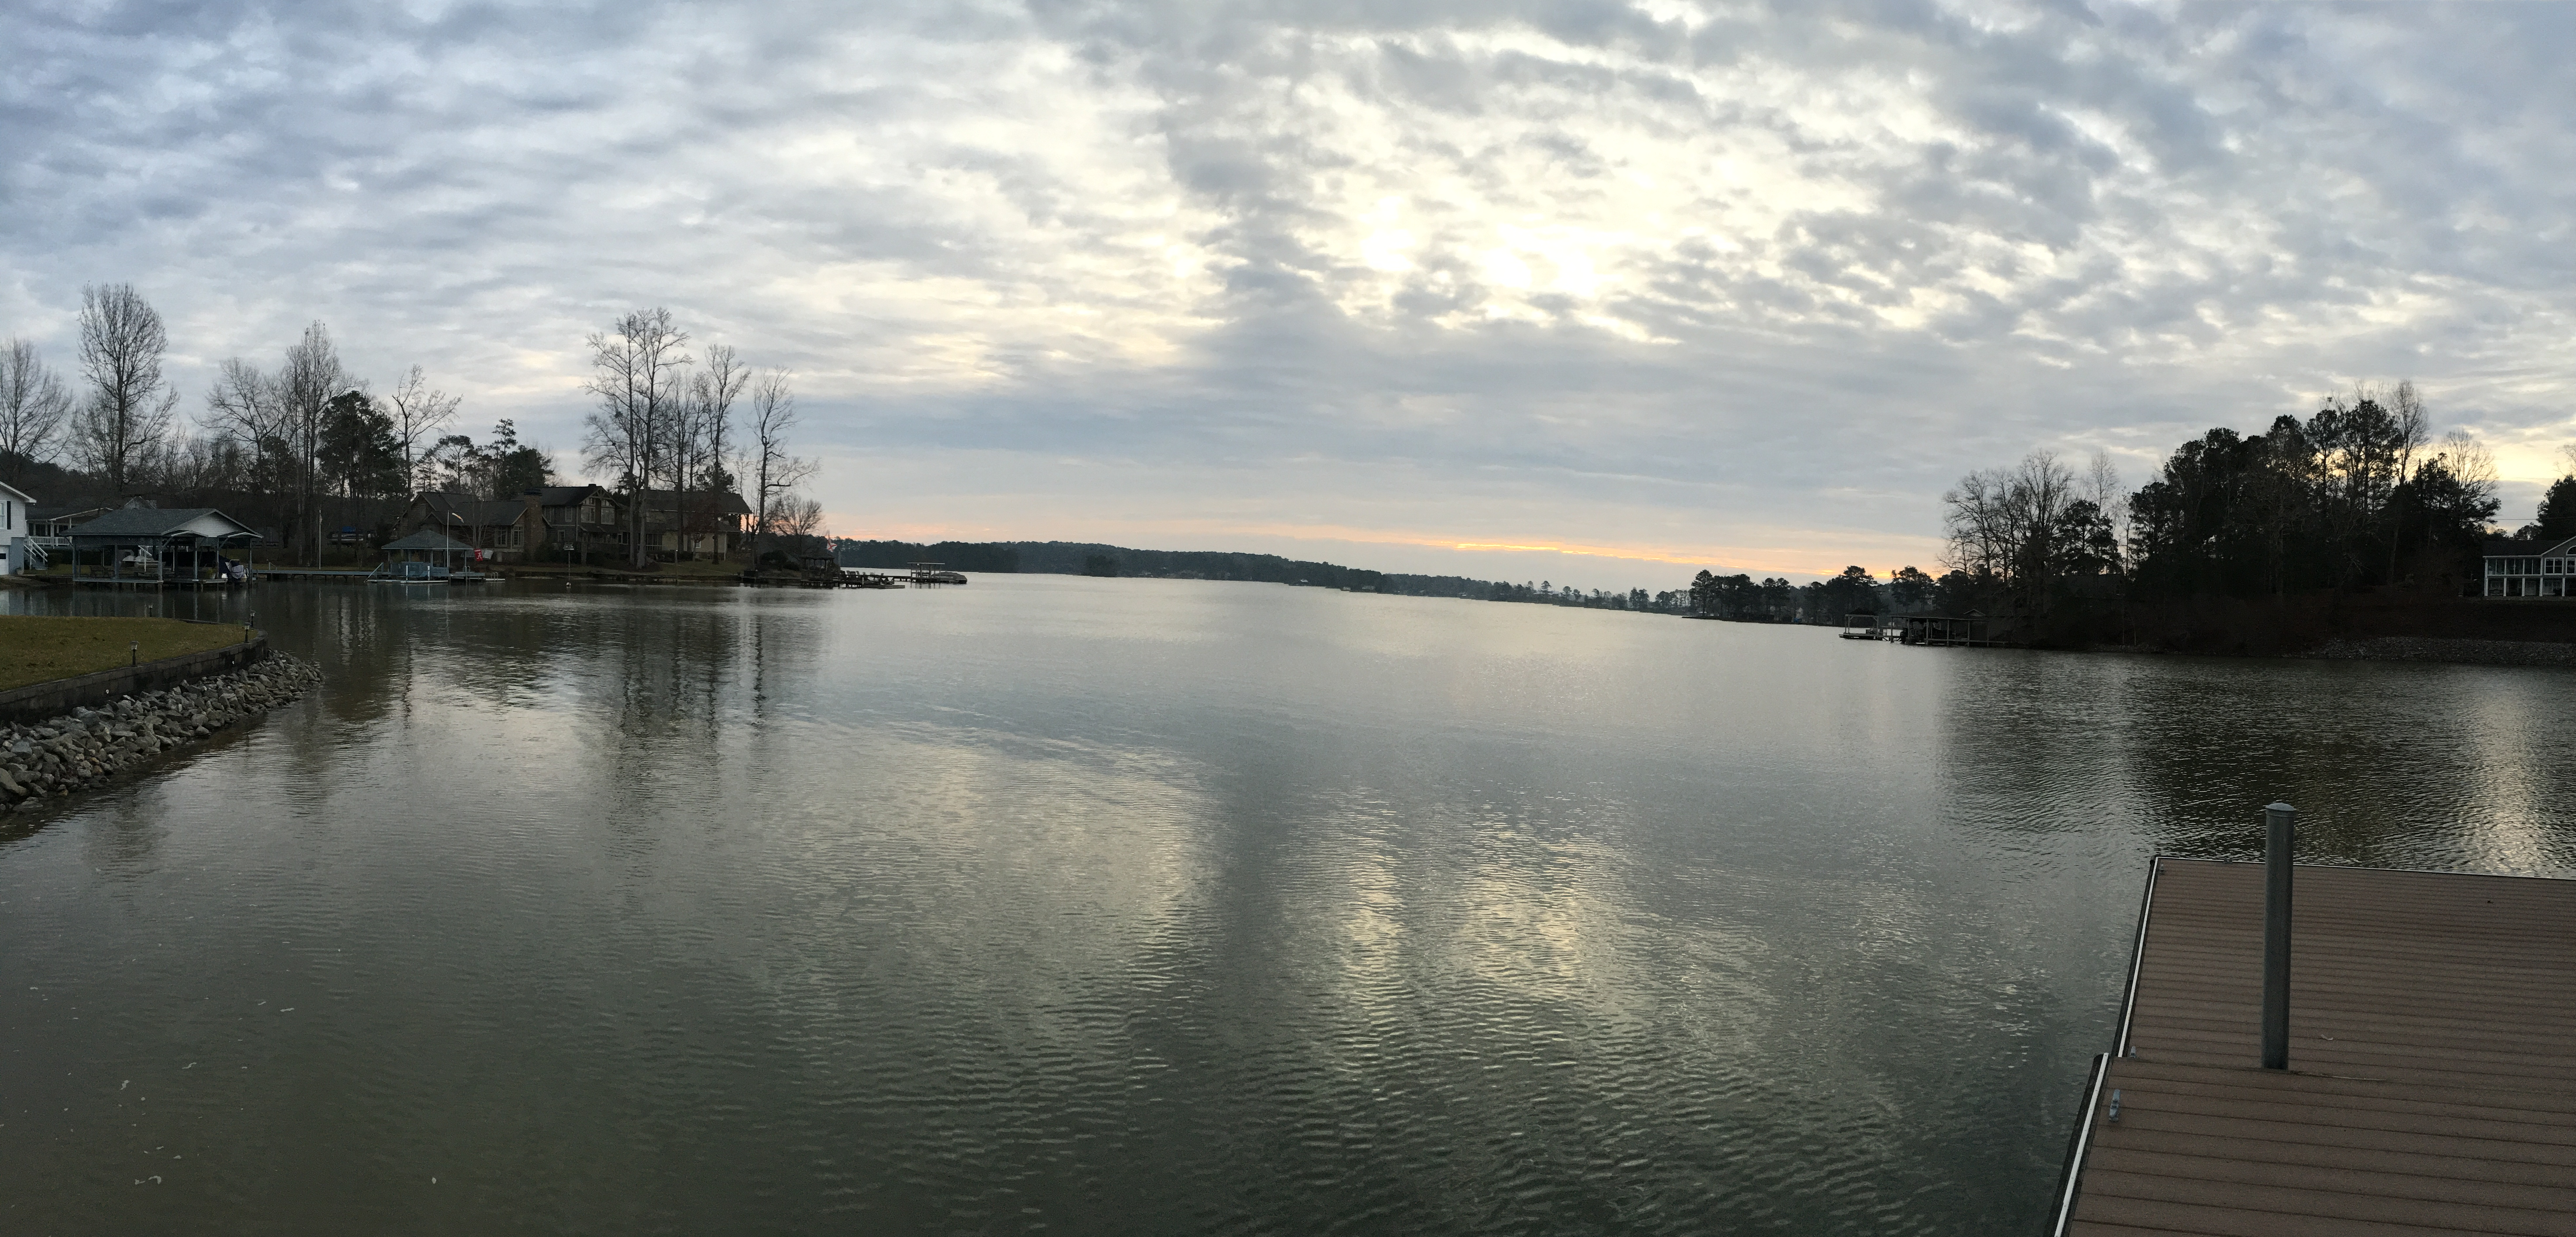 A view of the unusually full Lake Martin on New Year's Day